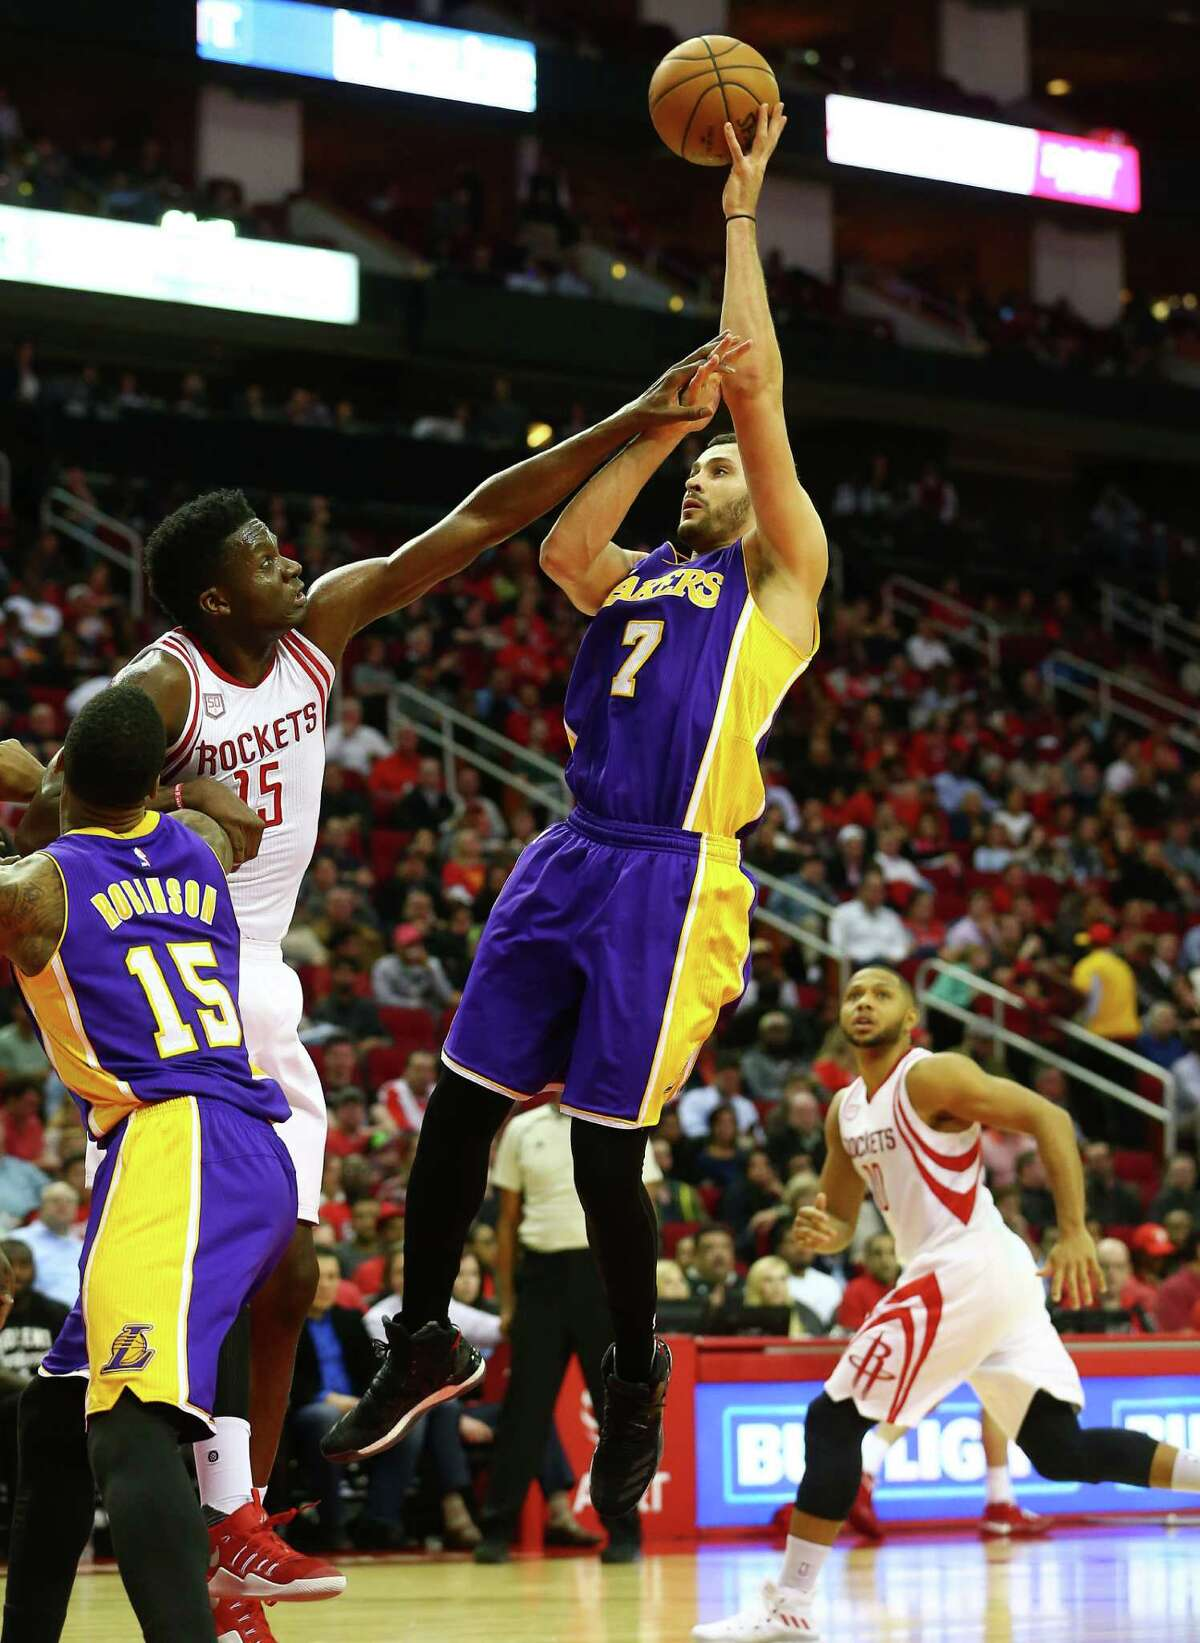 Los Angeles Lakers forward Larry Nance Jr. (7) takes a shot while Houston Rockets center Clint Capela (15) under pressure from during the third quarter of an NBA game at the Toyota Center, Wednesday, Dec. 7, 2016, in Houston.